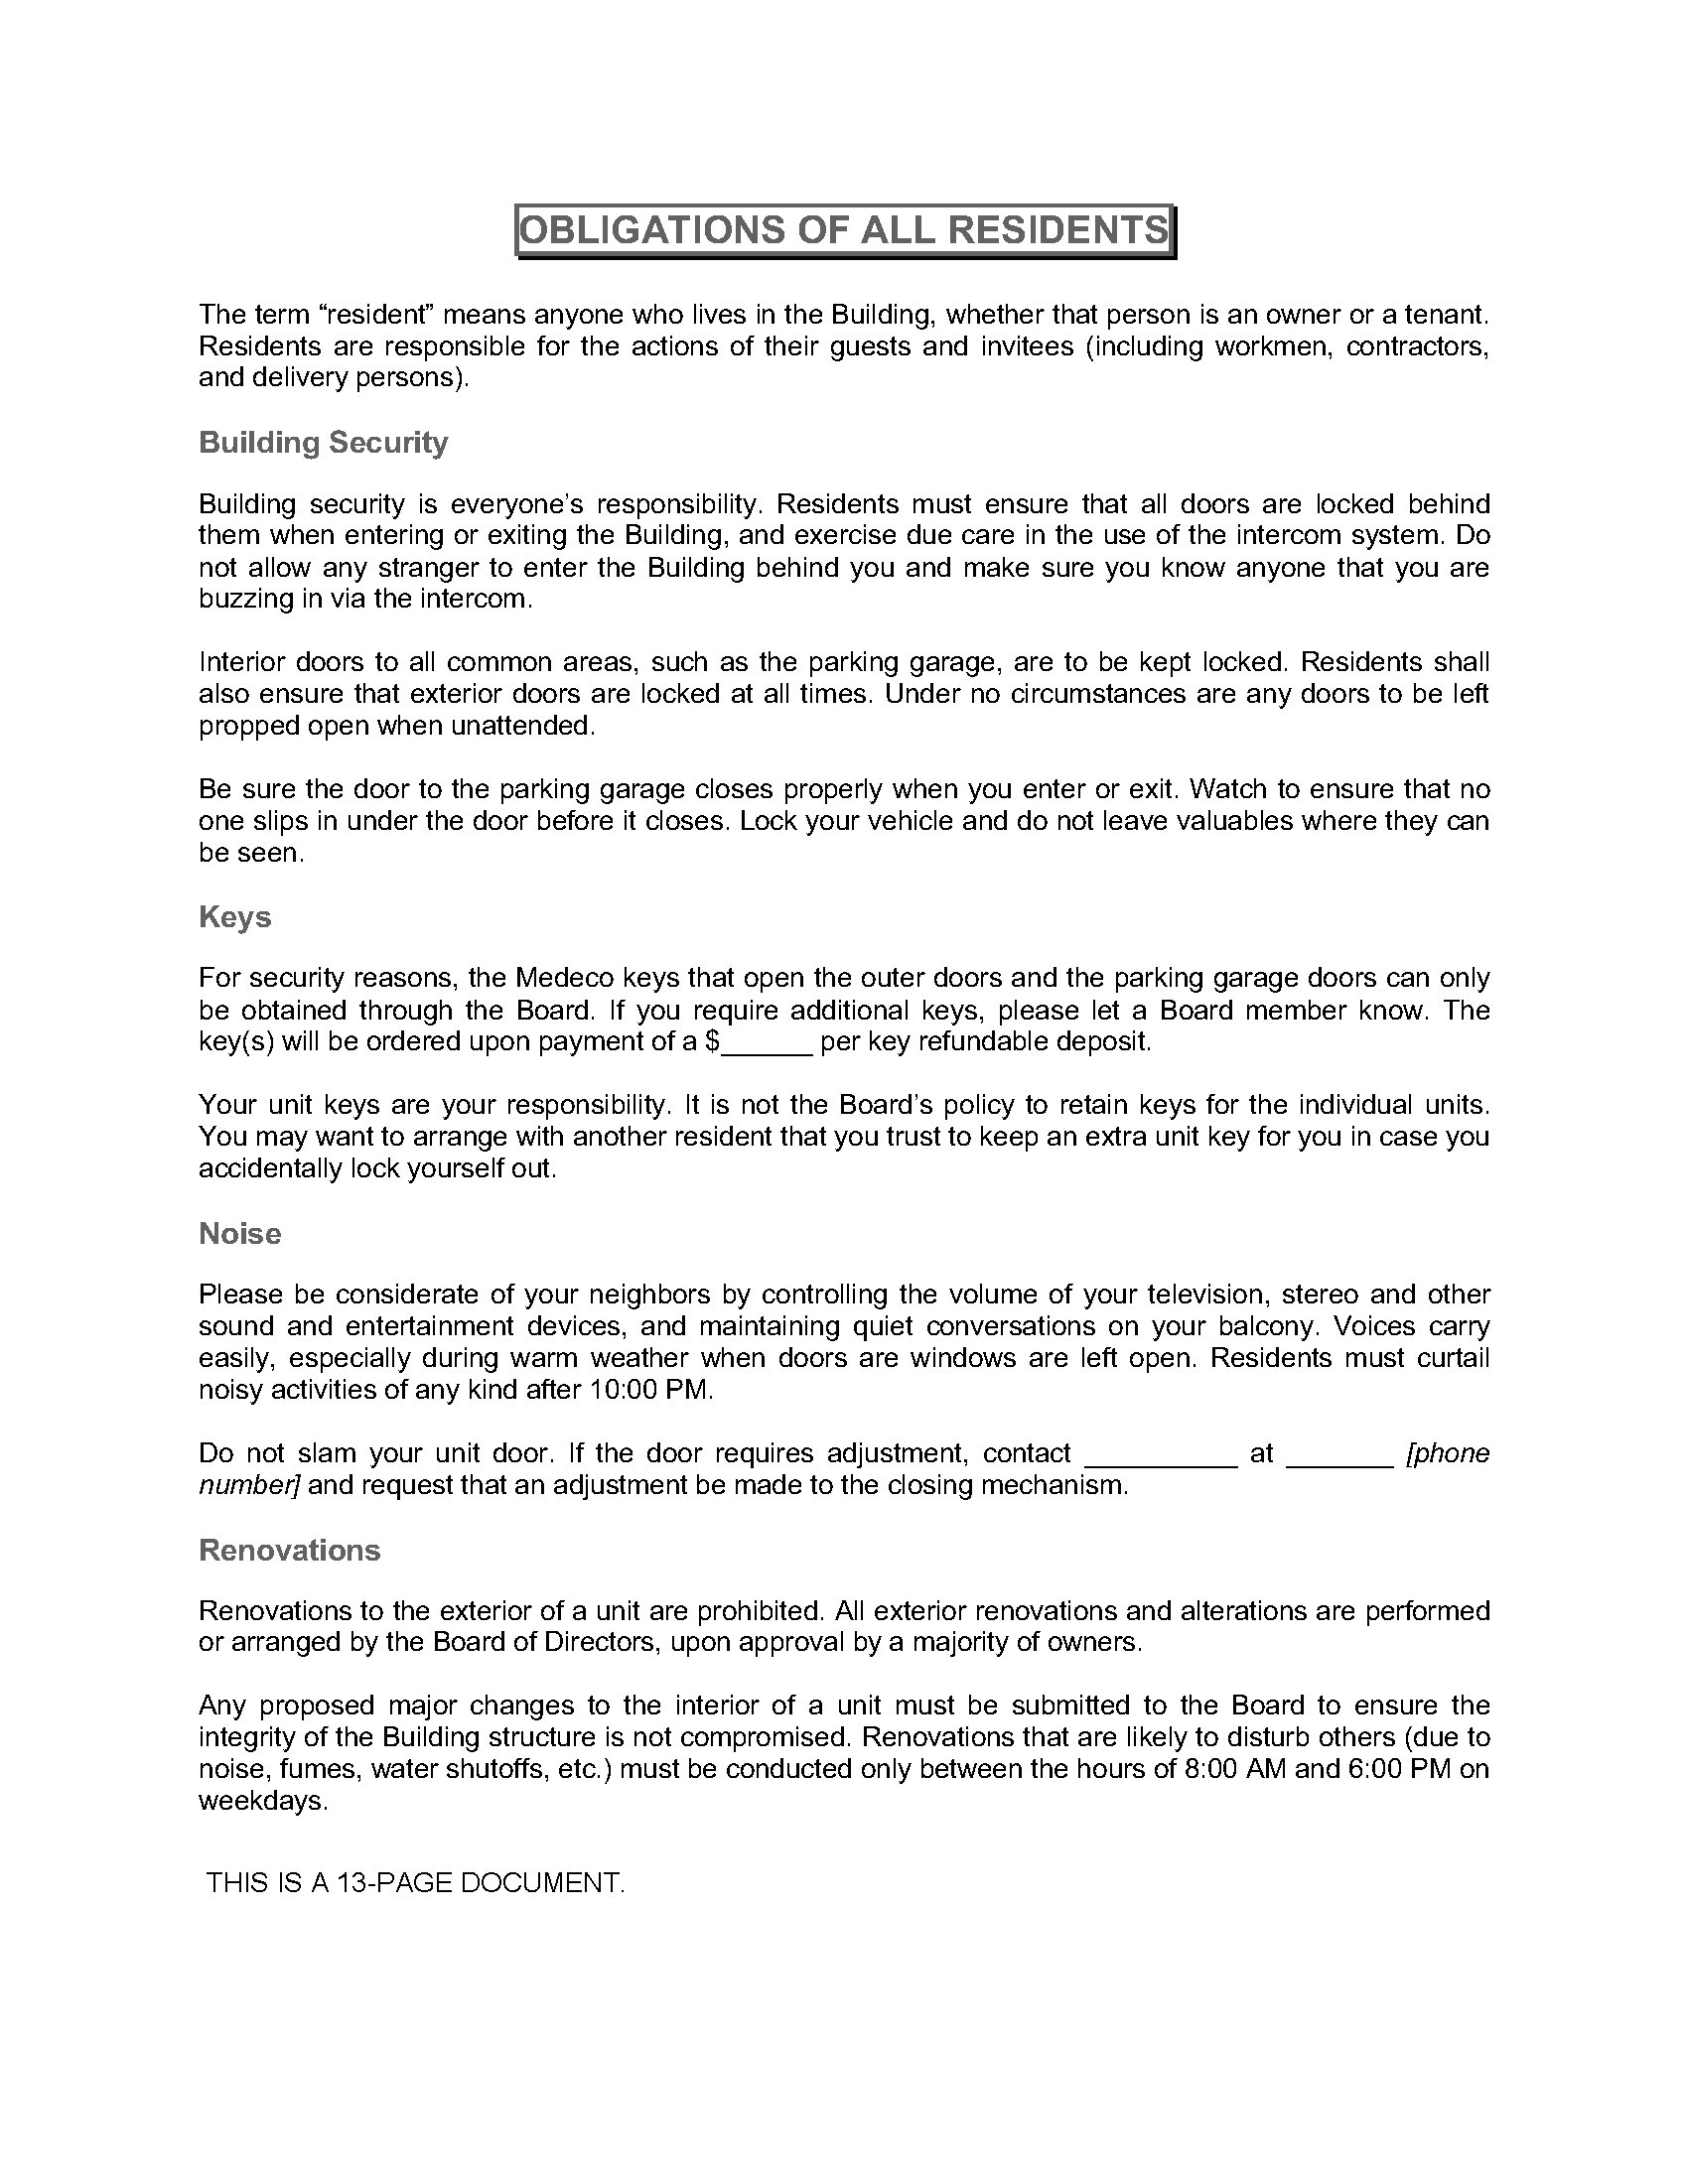 0008478_preview No Parking Letter Templates on warning letter template, blank letter format template, water letter template, open letter template, exit letter template, disabled letter template, police letter template, information letter template, school letter template, sample resignation letter template, eye-catching cover letter template, not guilty plea letter template, visitor letter template, construction letter template, entrance letter template,